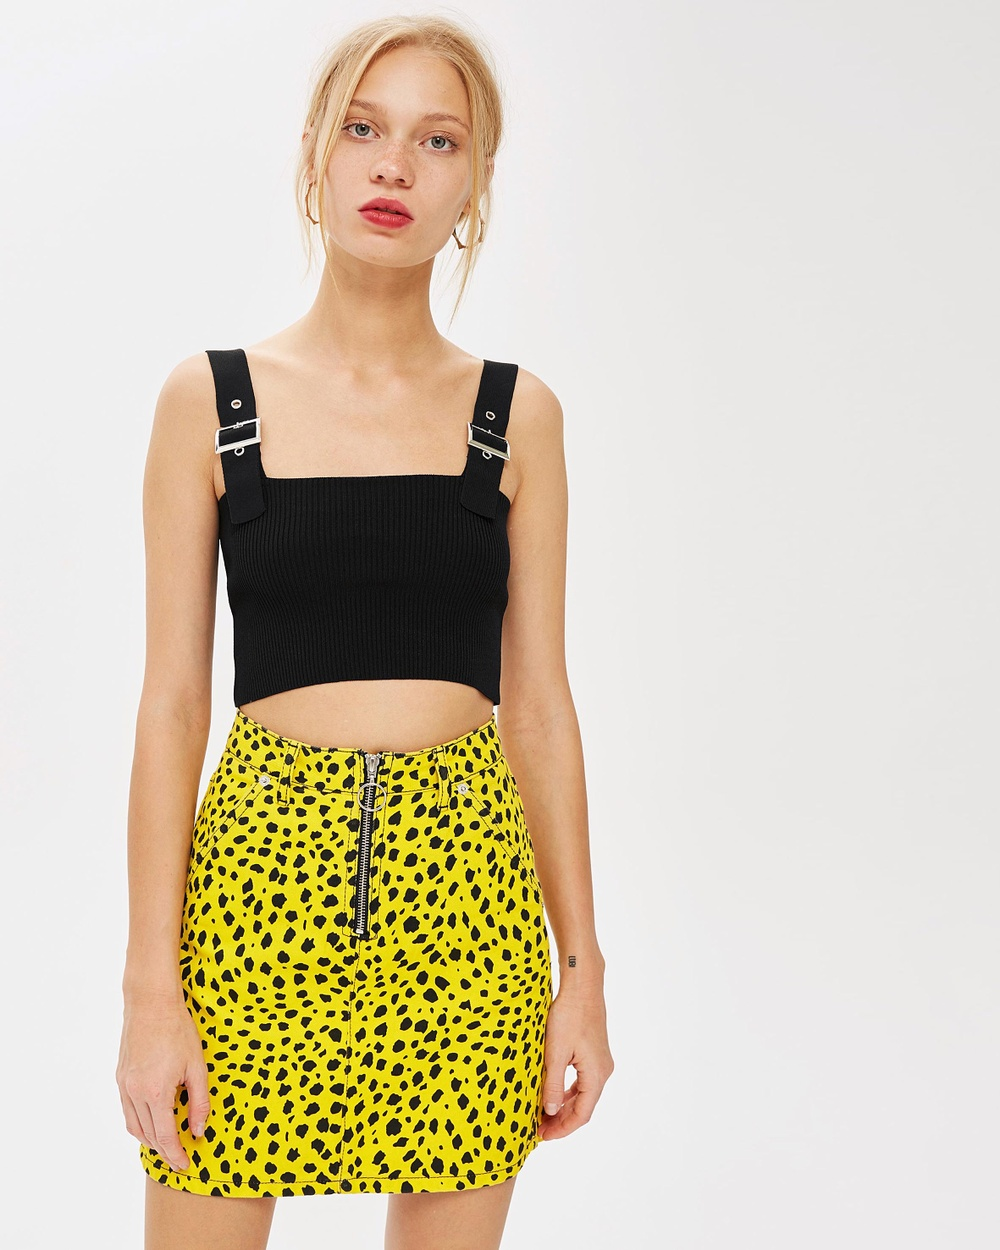 TOPSHOP Buckle Strap Top Cropped tops Black Buckle Strap Top